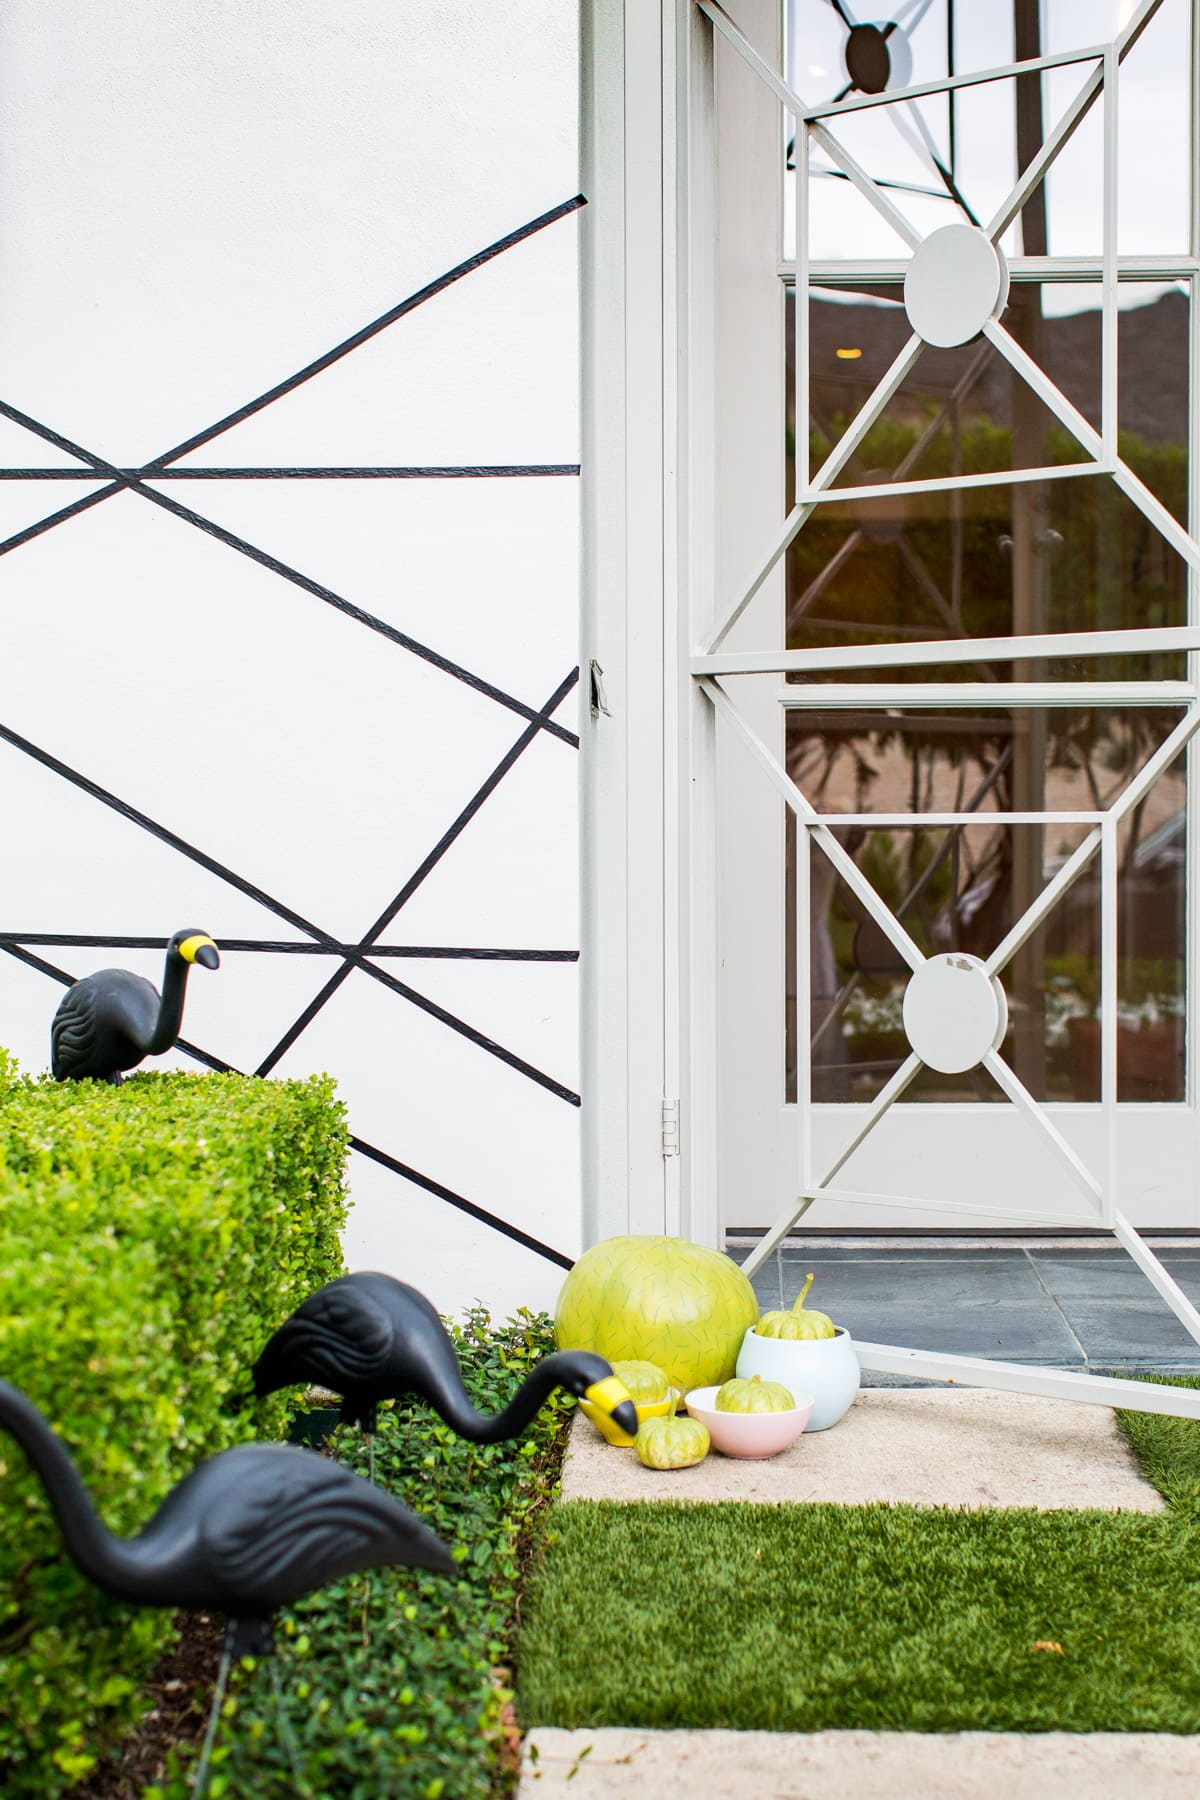 DIY a perfectly spooky geometric entry way - Palm Springs Inspired Halloween Entryway Decor & Product Round Up by top Houston lifestyle blogger Ashley Rose - #halloweendecor #halloween #decor #home #holidays #curbappeal #palmsprings #midcentury